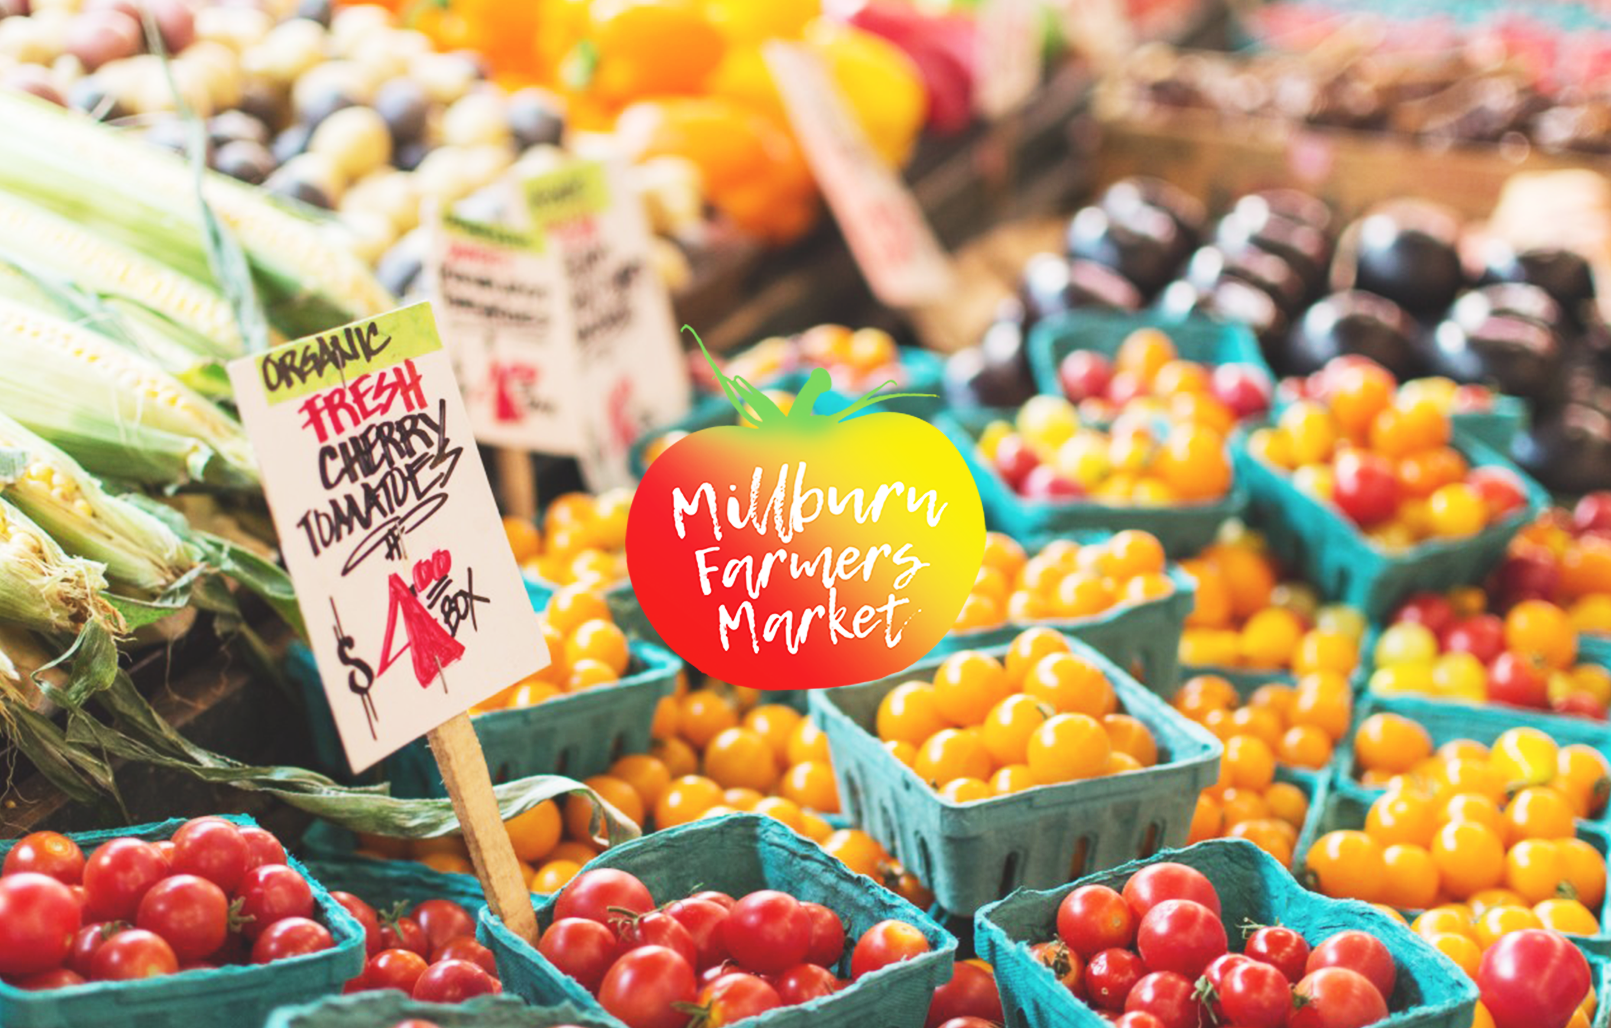 Background photo of veggies with Millburn Farmers Market logo on top